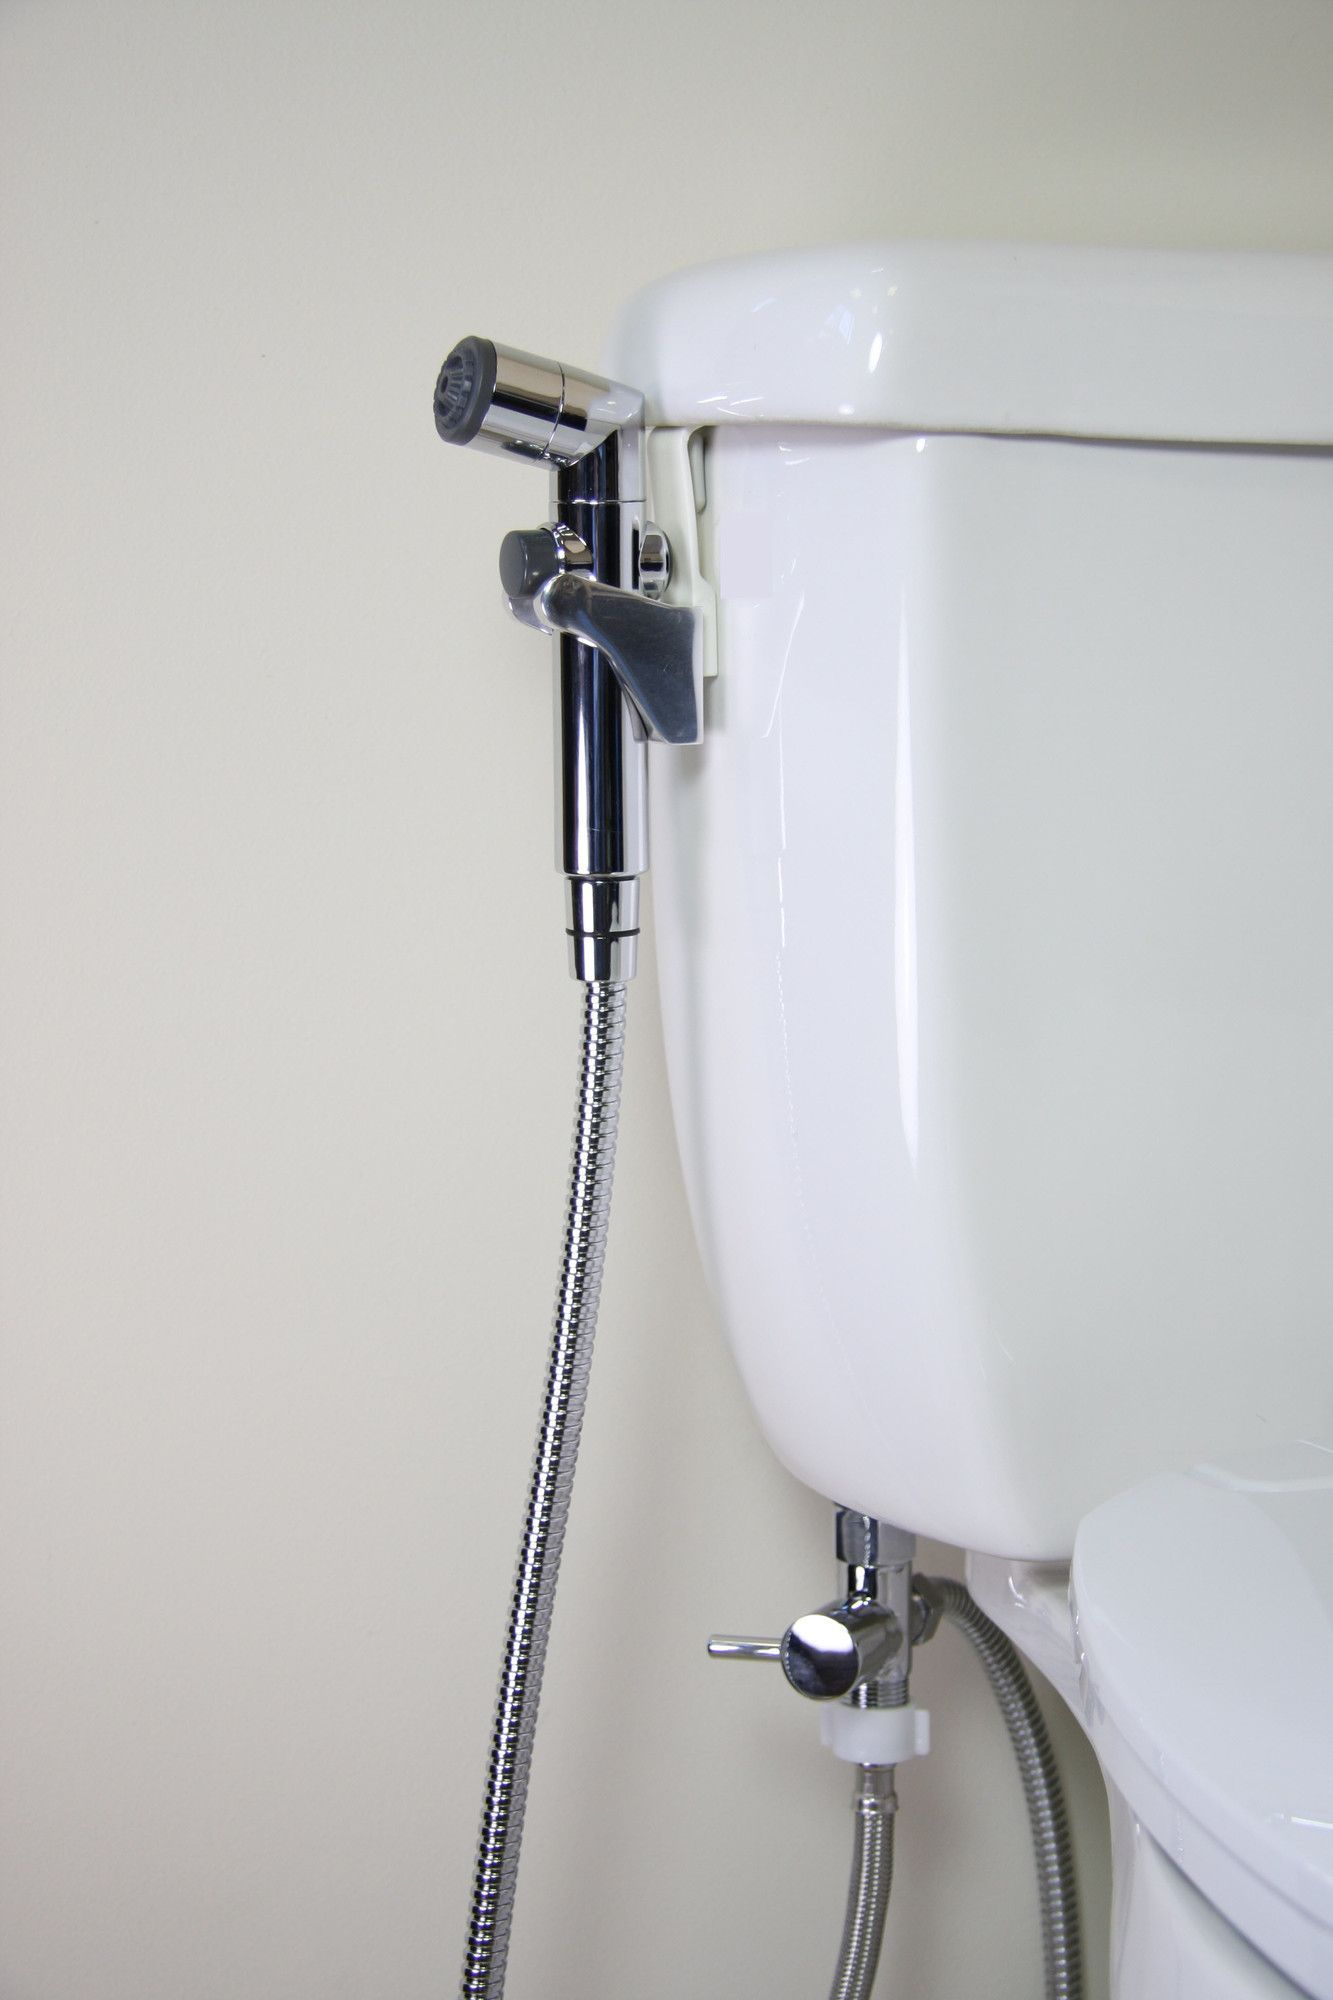 Brondell CleanSpa Hand Held Bidet U0026 Reviews | Wayfairu003eu003eu003e See It. Believe  It. Do It. Watch Thousands Of Spinal Cord Injury Videos At SPINALpedia.com